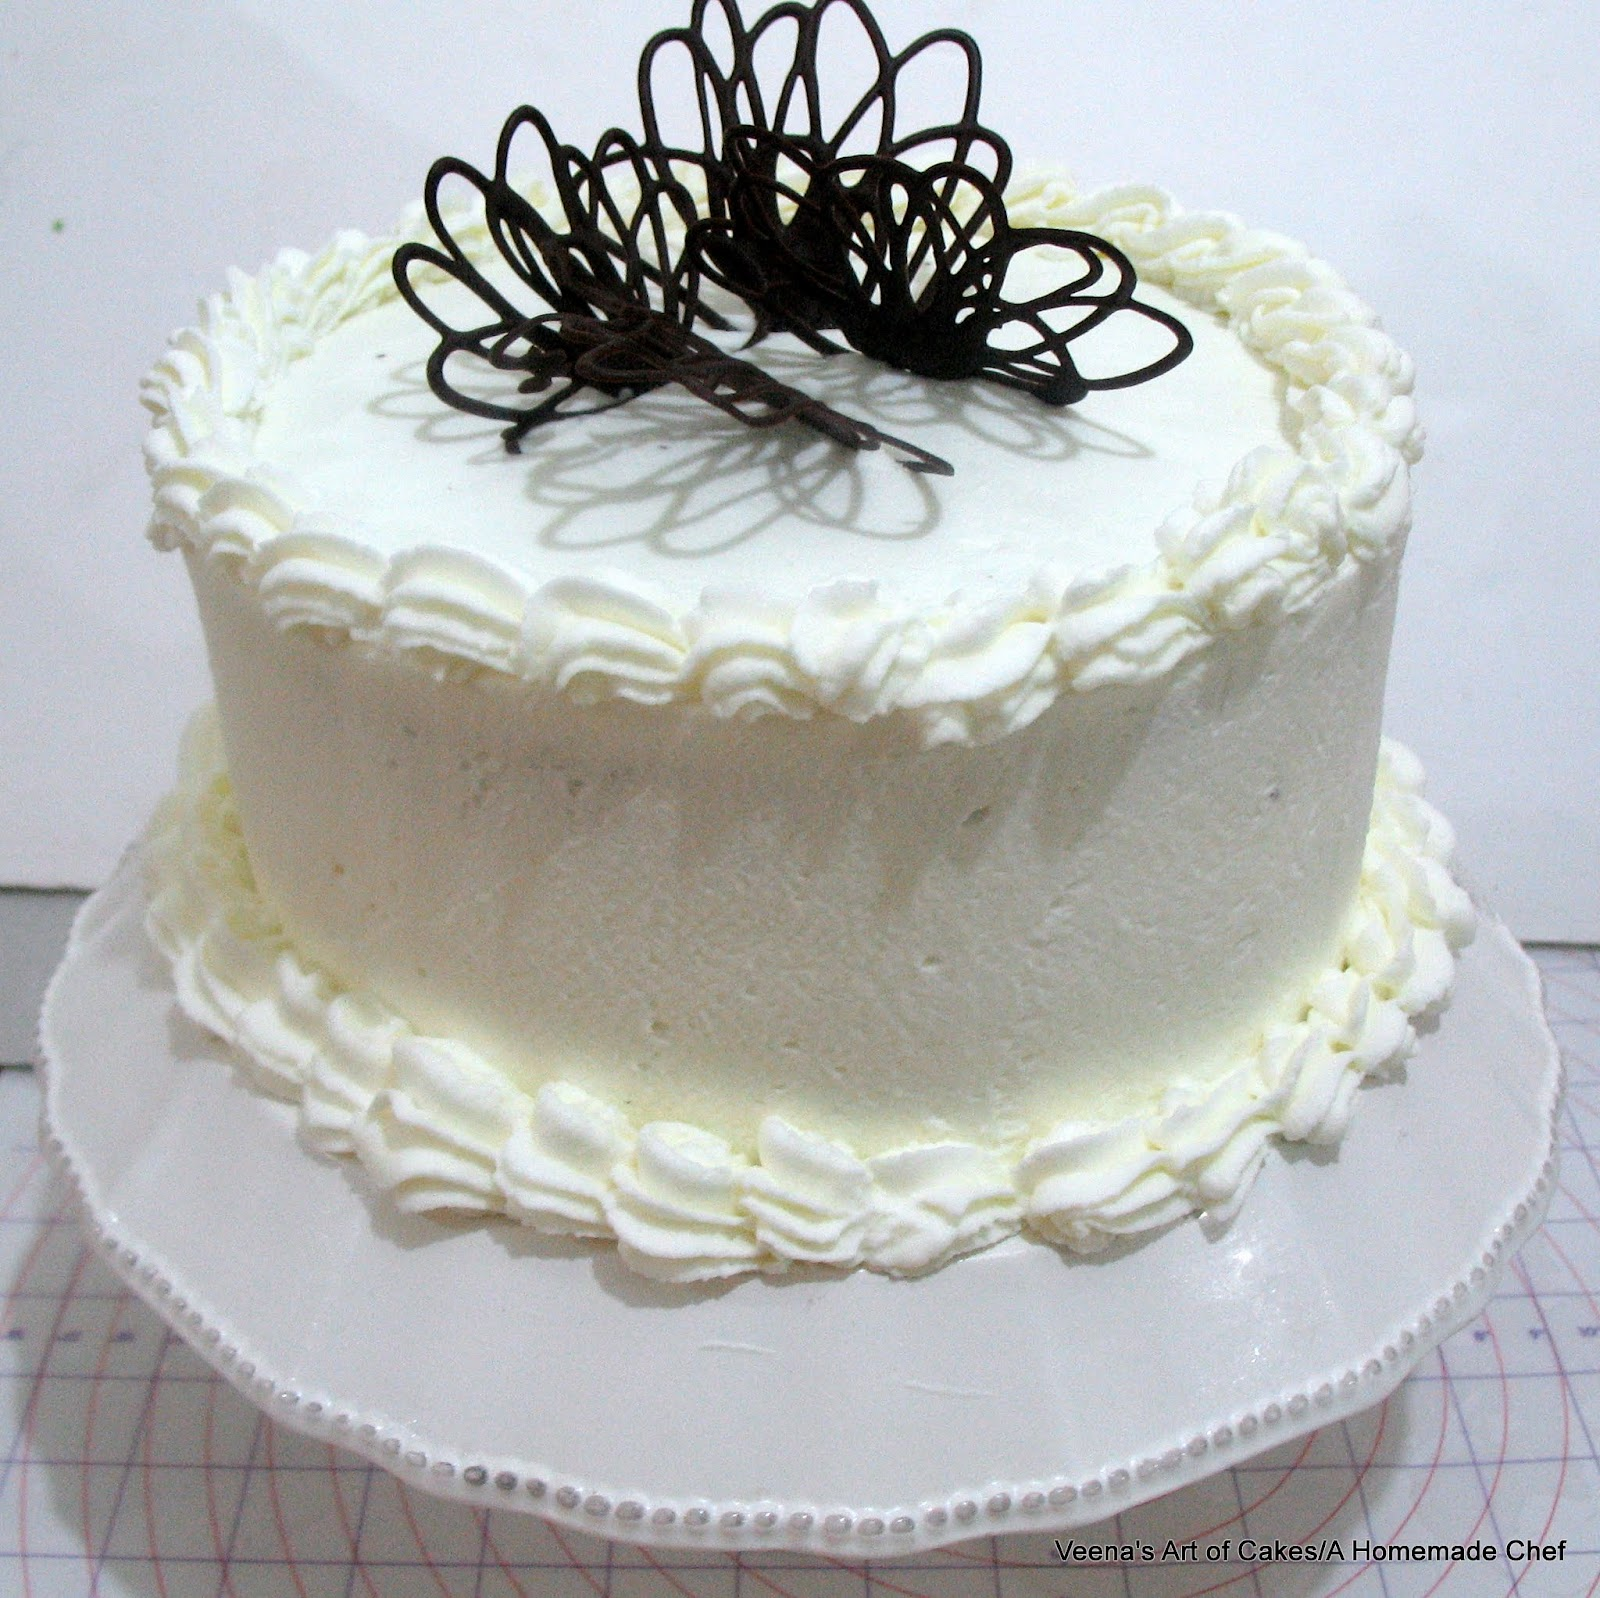 How to stabilize Whipped Cream - Veena's Art of Cakes